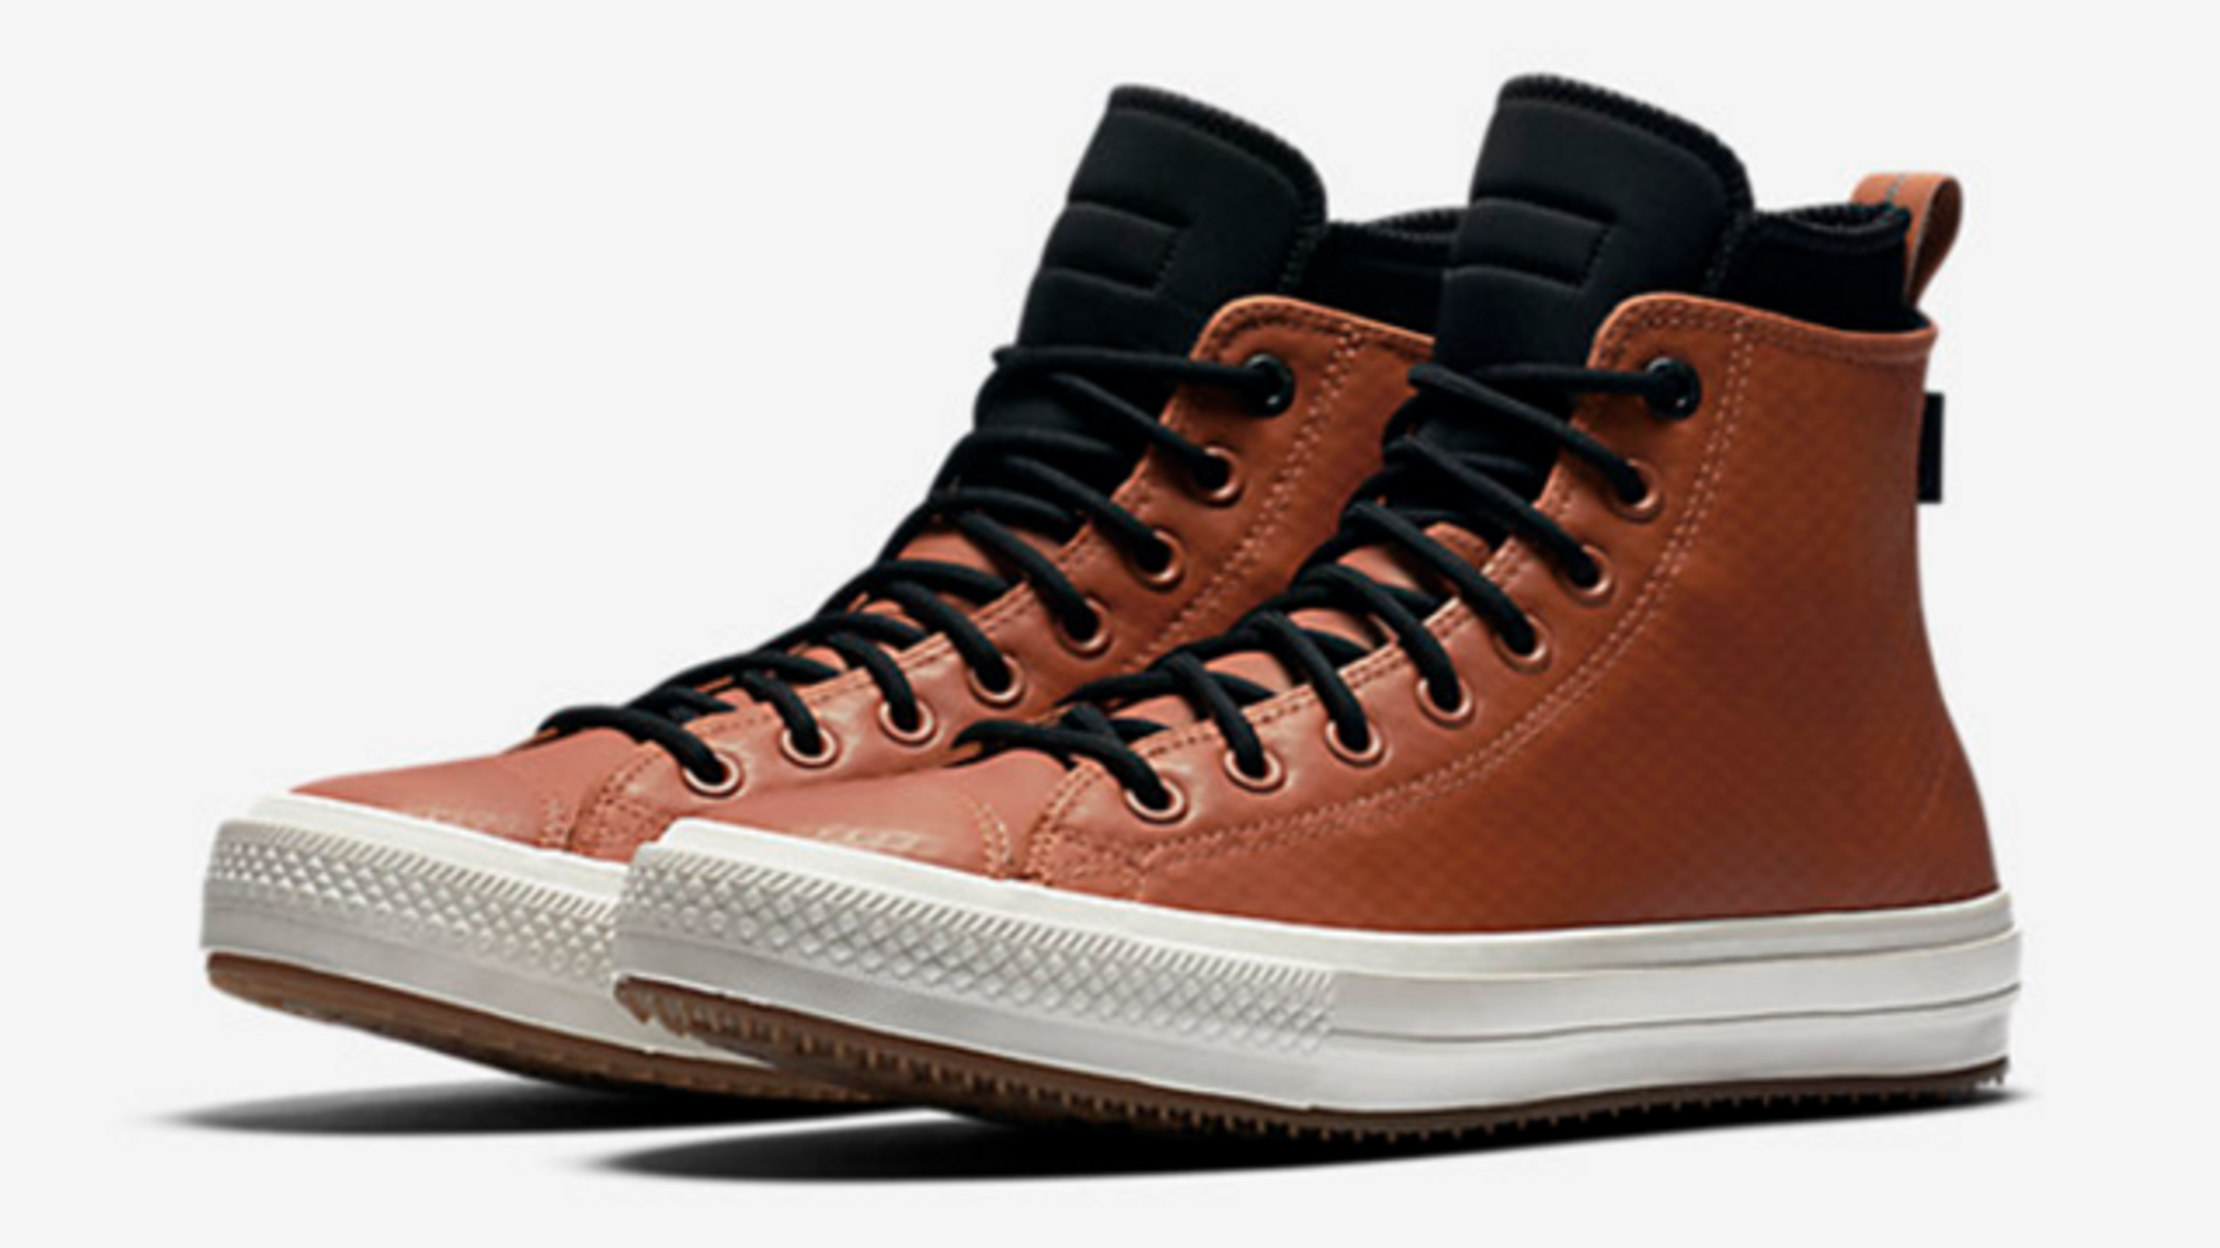 Converse Releases a Waterproof Chuck Taylor All Star II